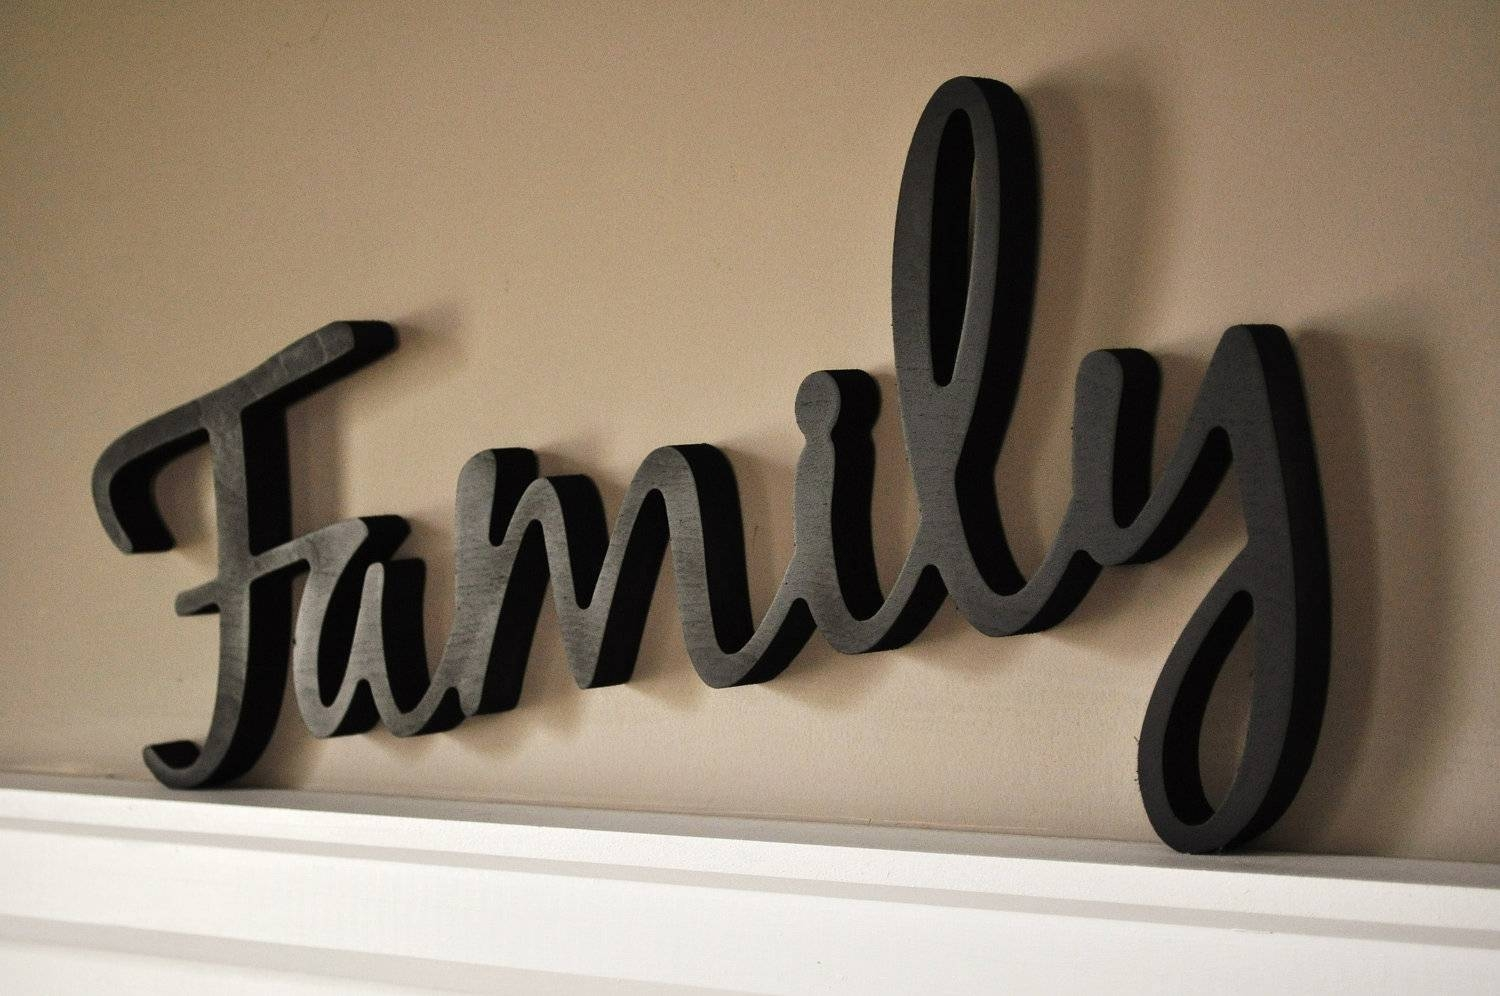 Word Art Wood 3d Cutout Familymrc Wood Products In Most Current Wooden Word Wall Art (View 1 of 30)